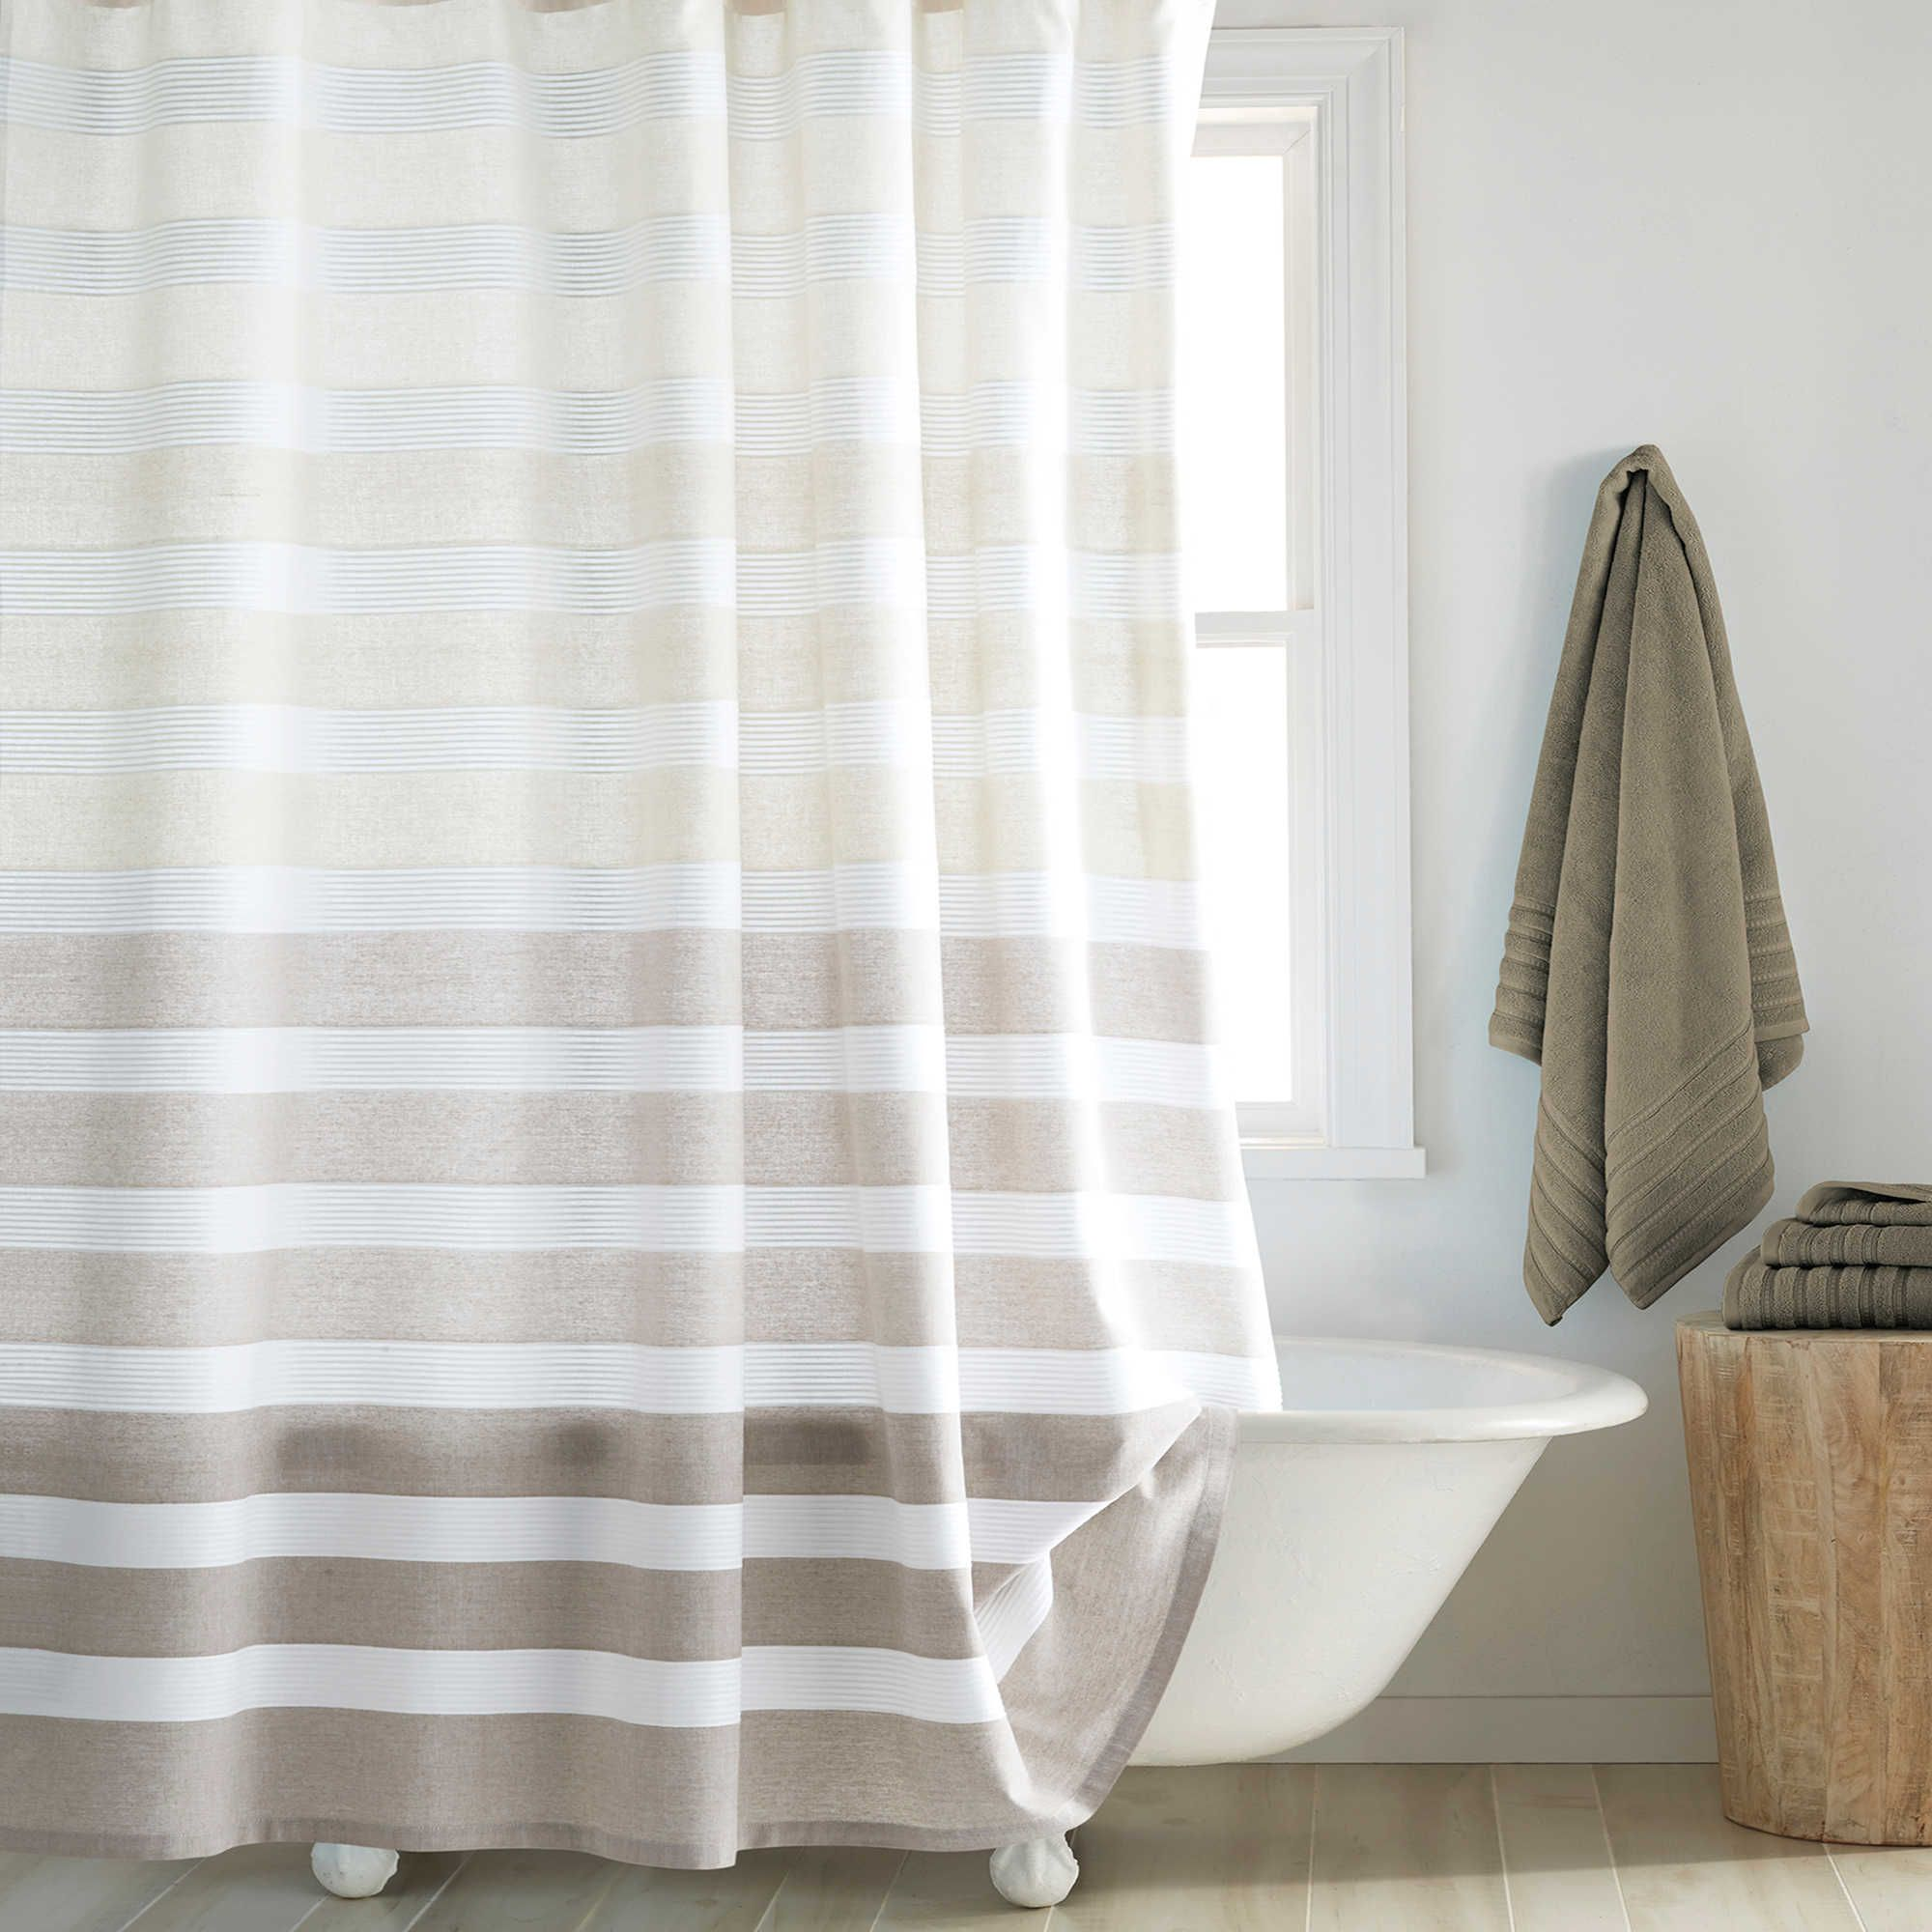 Dkny Highline 54 Inch X 78 Inch Stripe Stall Shower Curtain In Taupe Striped Shower Curtains Shabby Chic Bathroom Long Shower Curtains